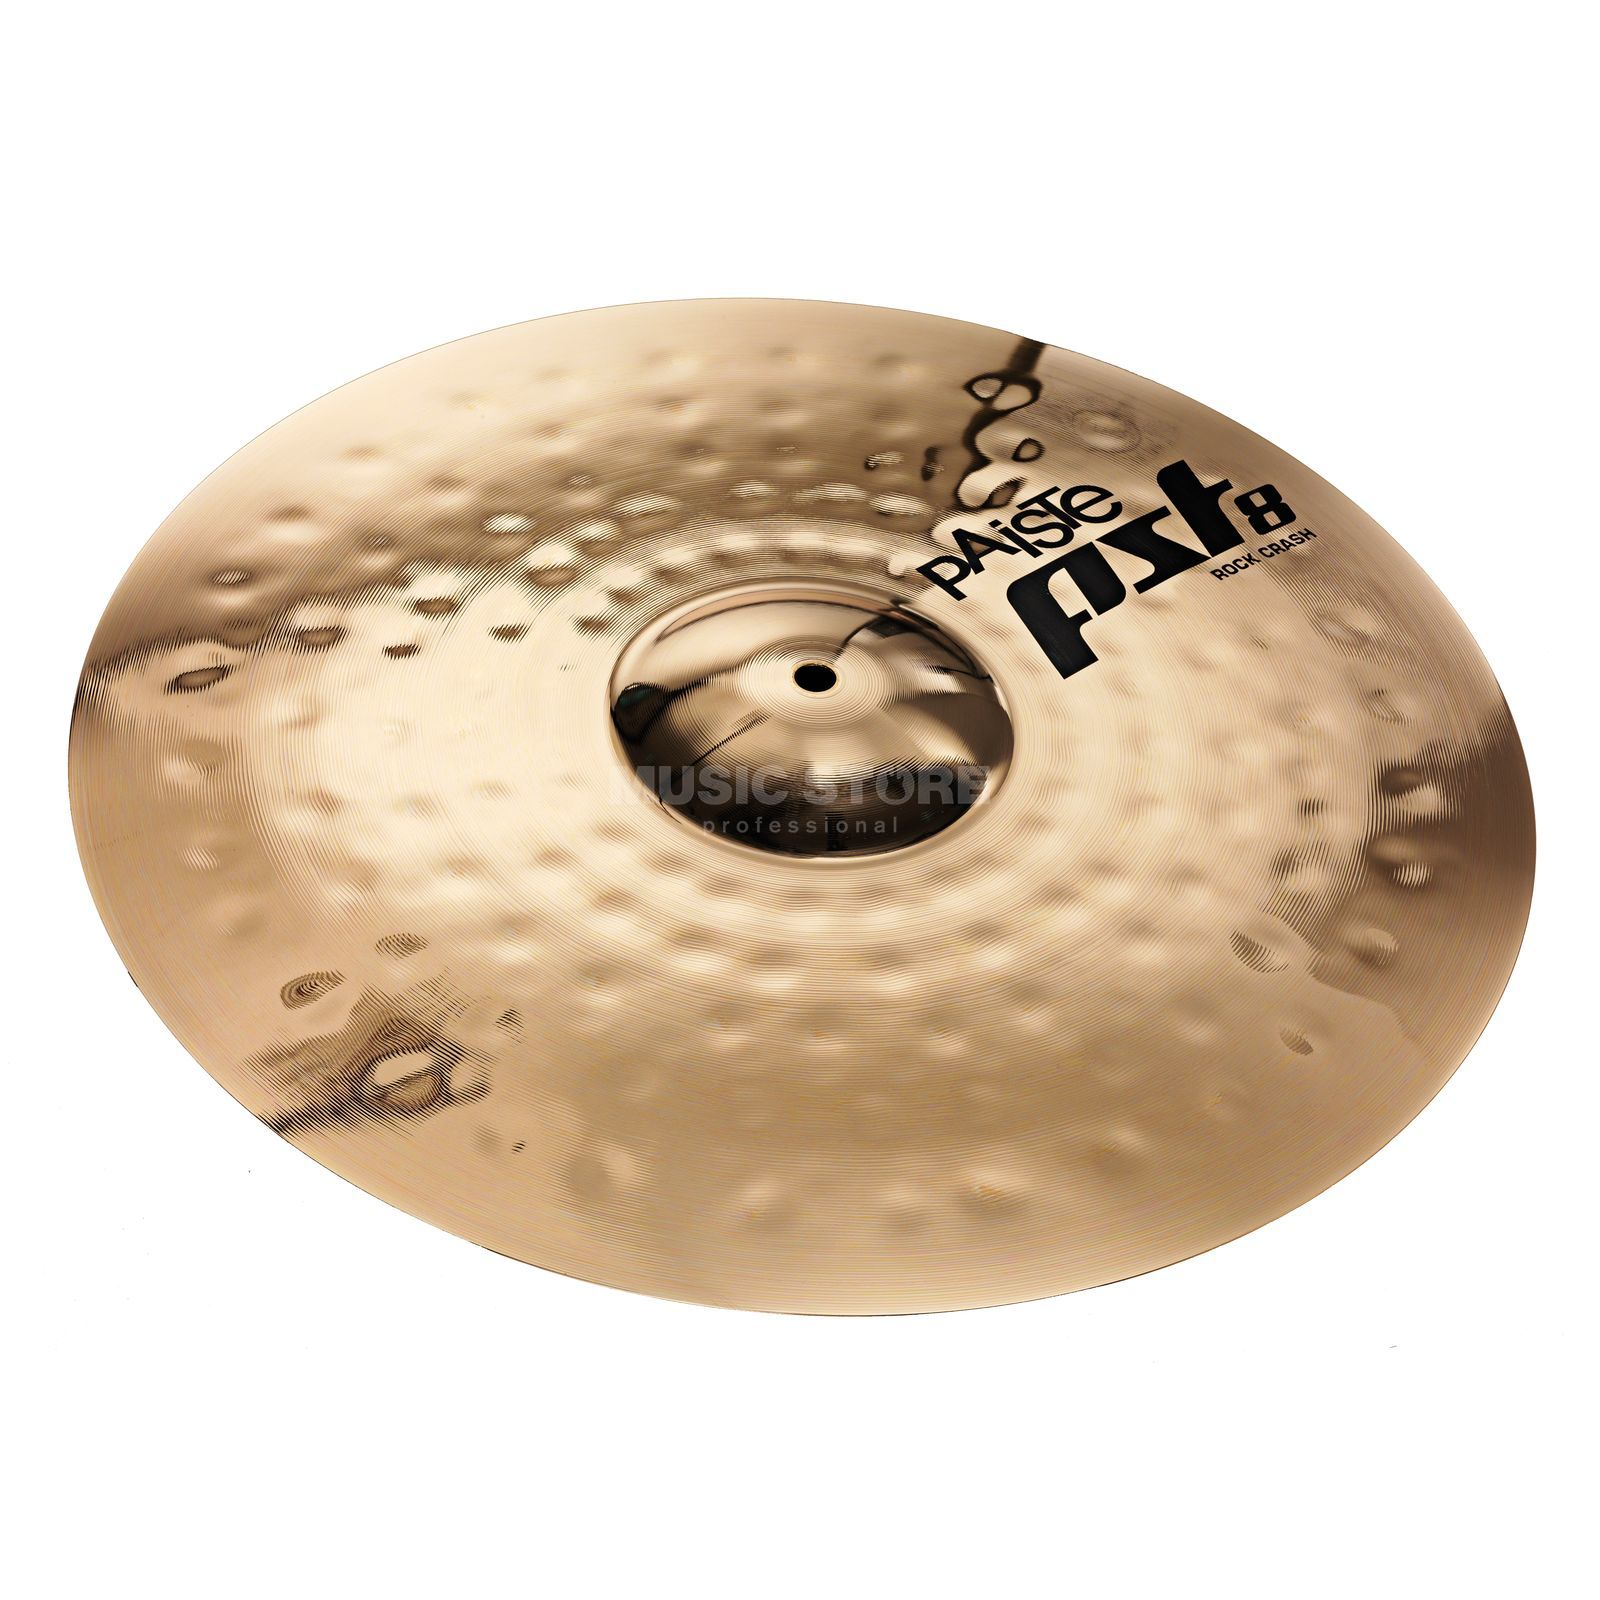 "Paiste PST8 Rock Crash 16"", Reflector Finish Produktbild"